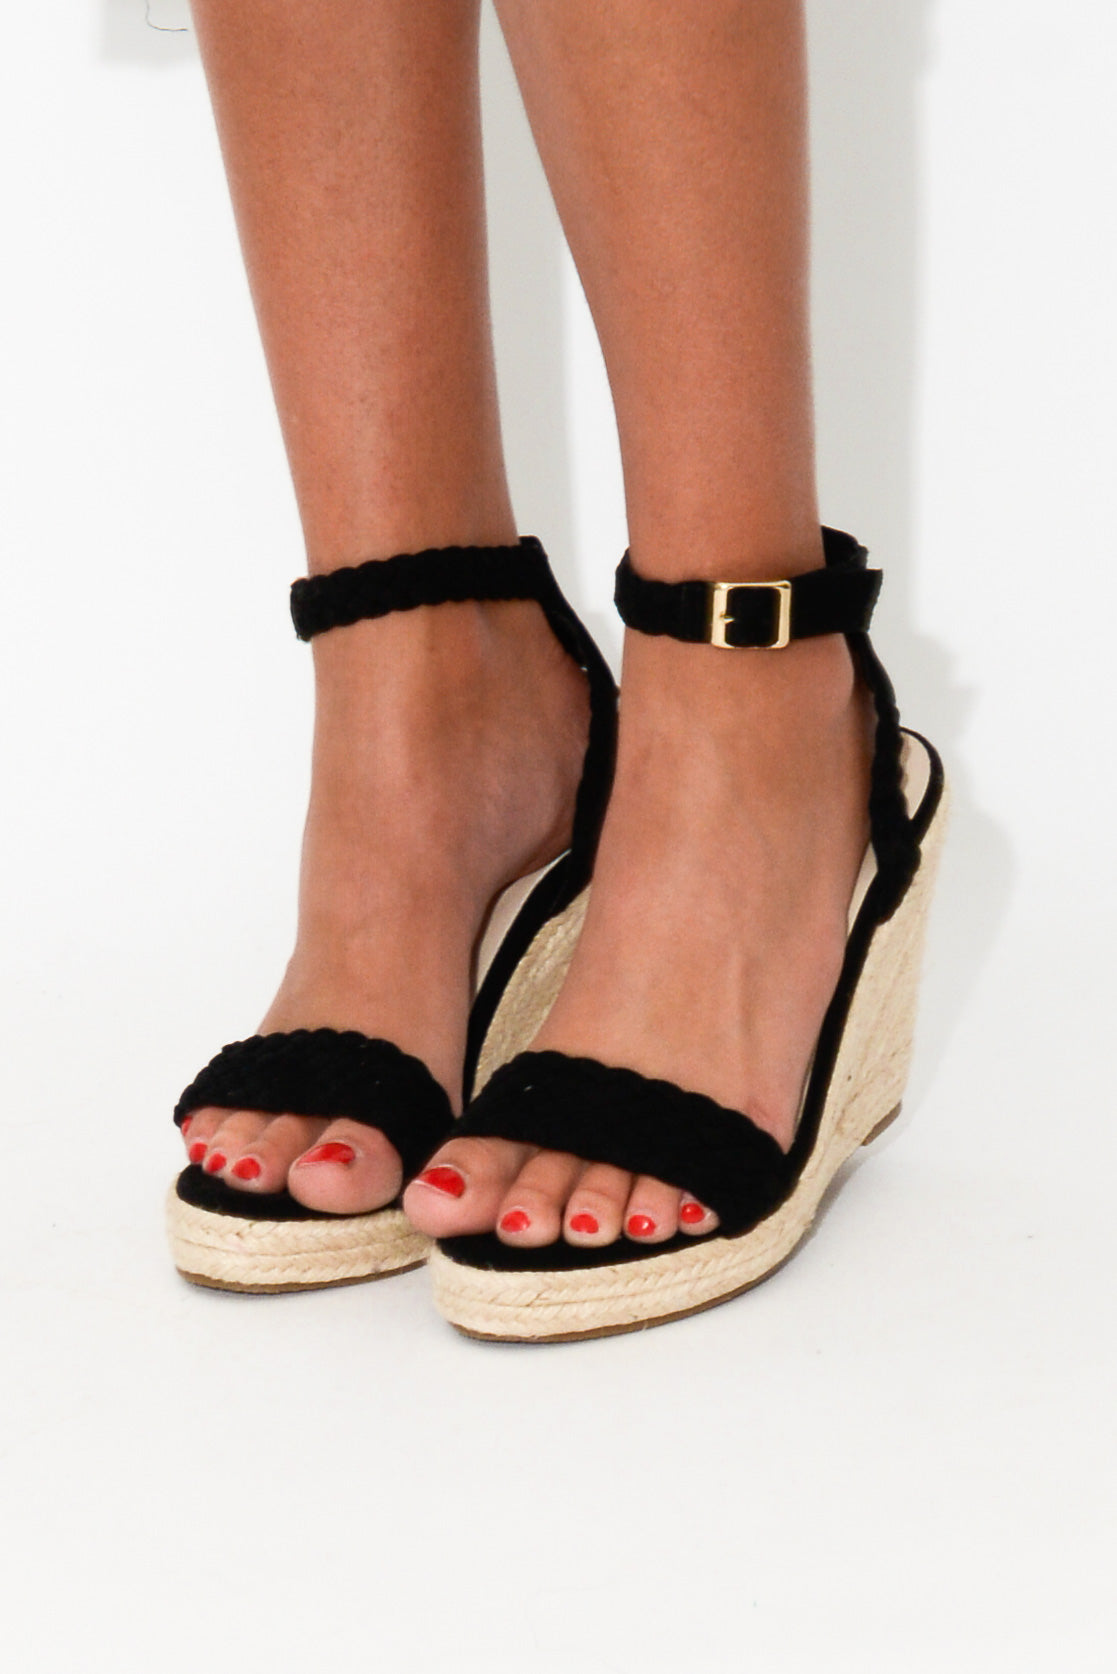 Pepper Black Wedge Heel - Blue Bungalow